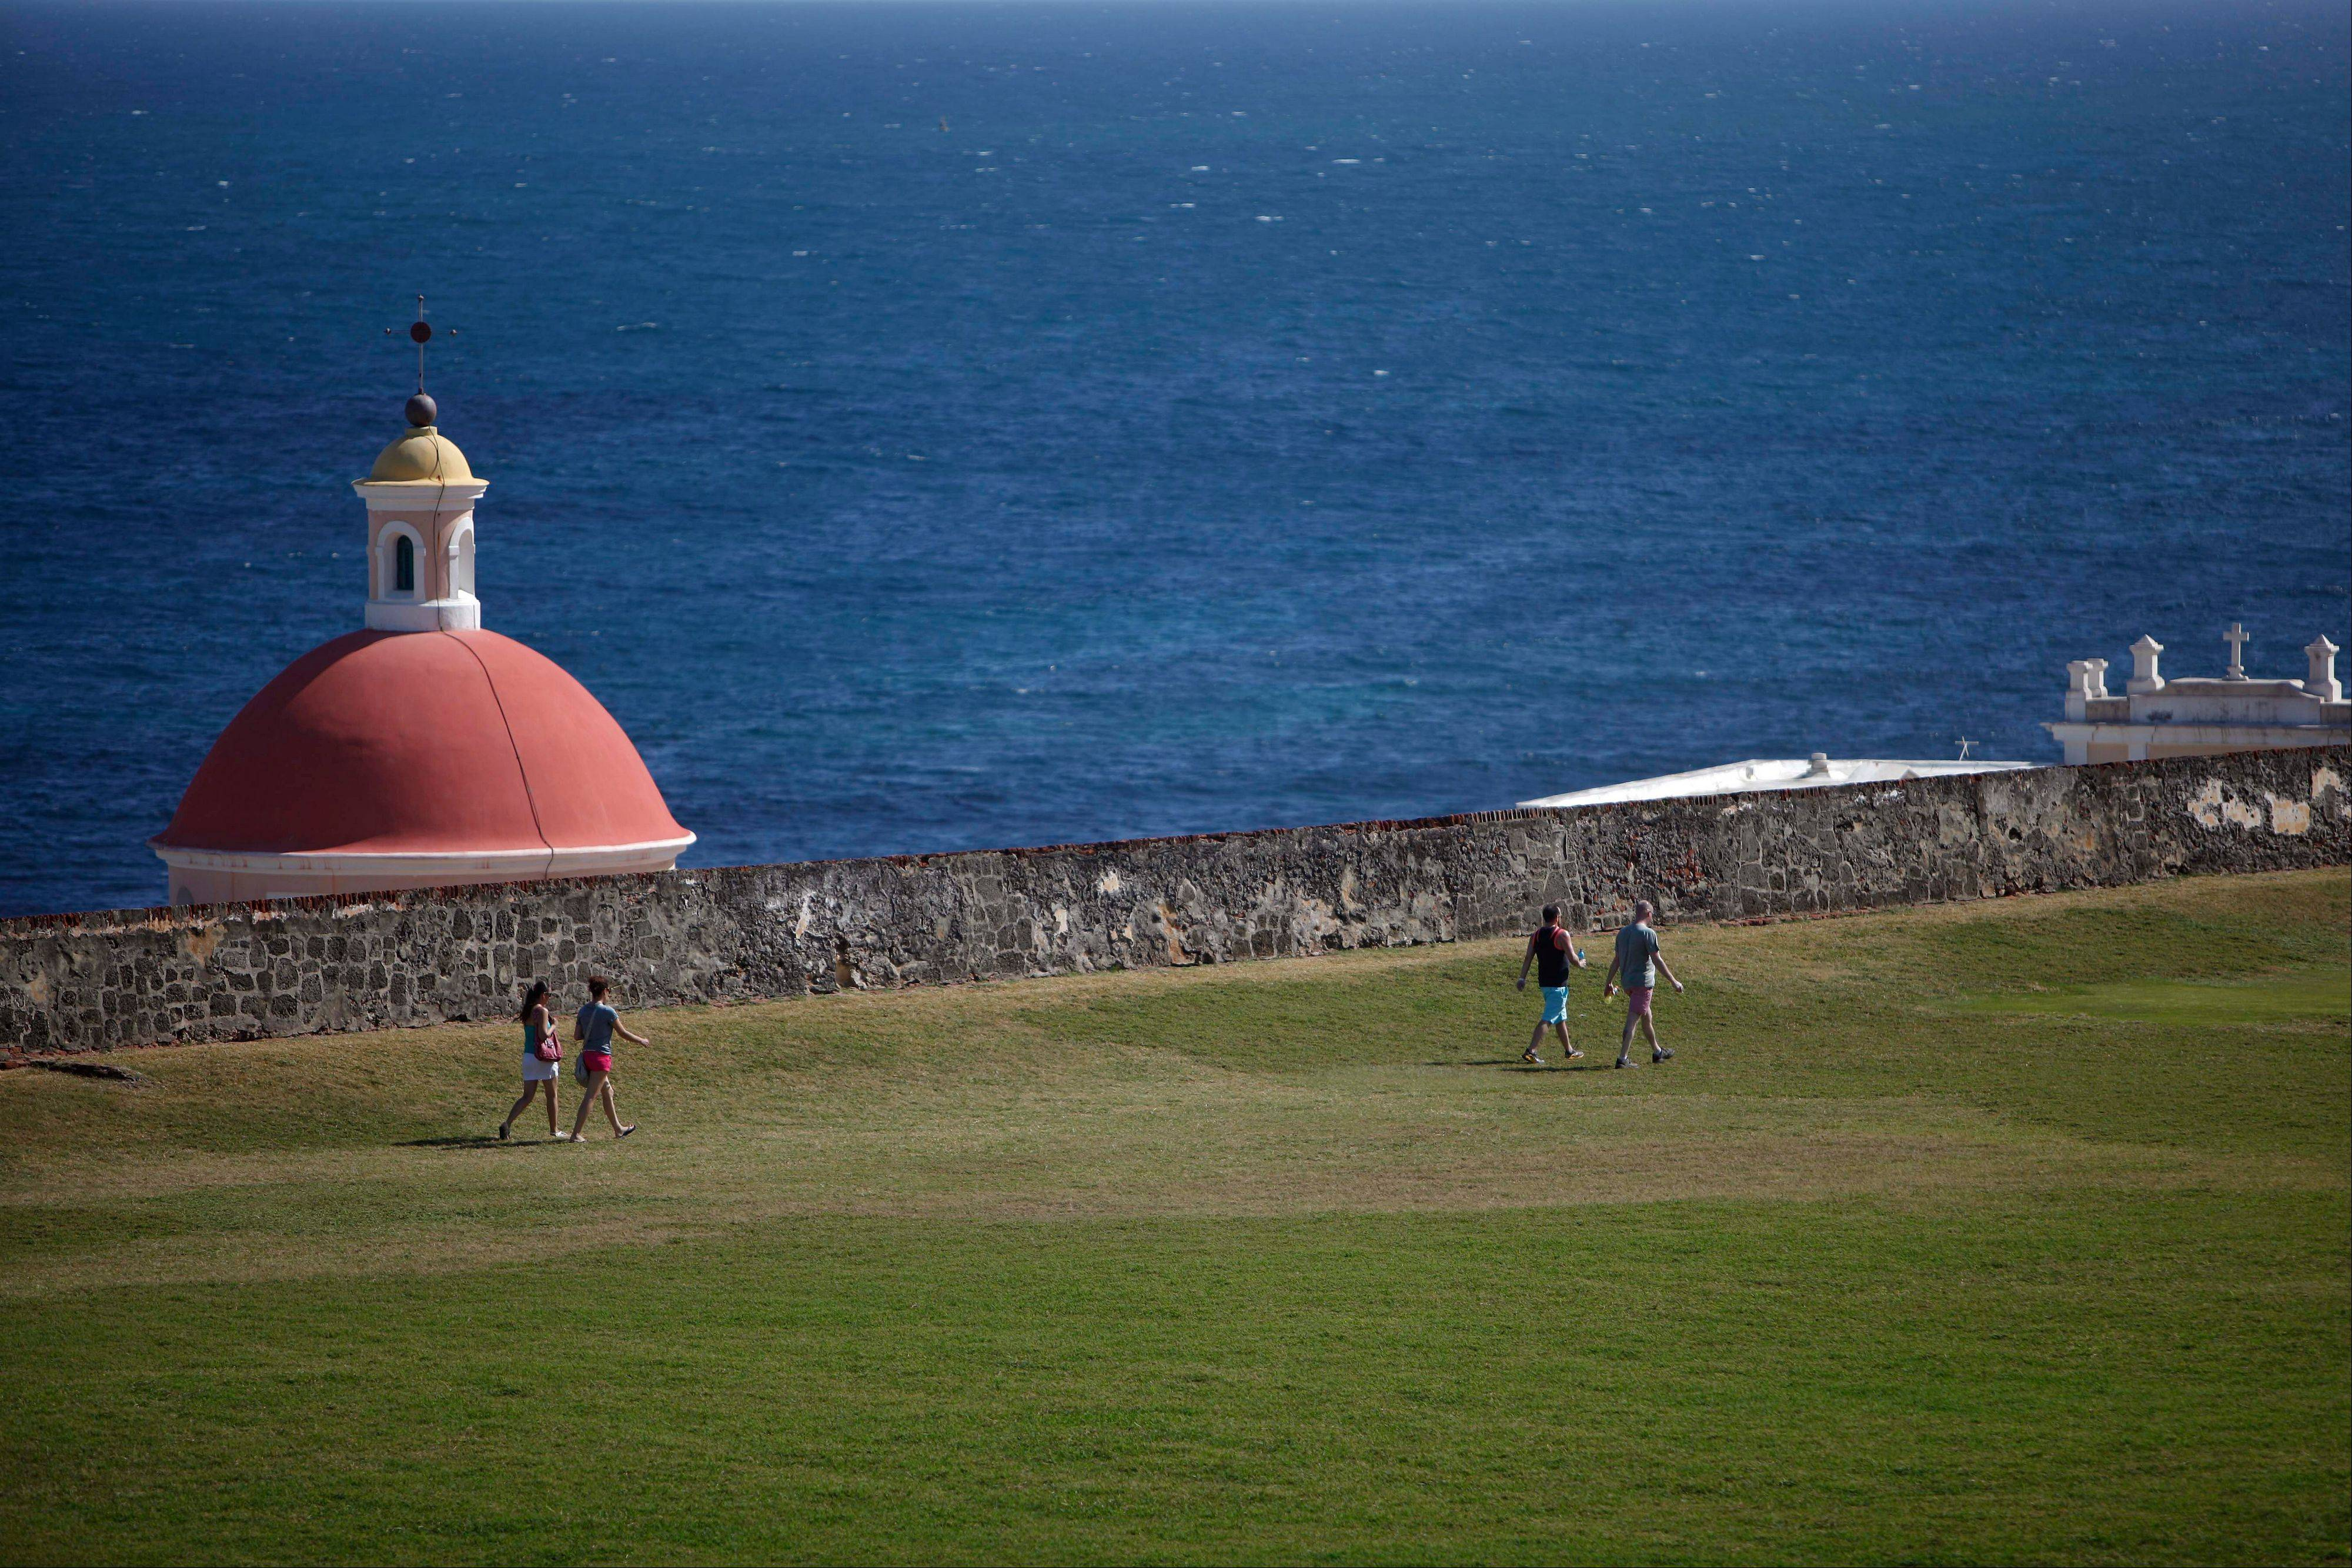 Tourists visit the 16th-century Spanish fort called El Morro in Old San Juan. There's an entrance fee to enter the Castillo San Felipe del Morro, but the best way to enjoy this U.S. National Historic Site requires no money at all.